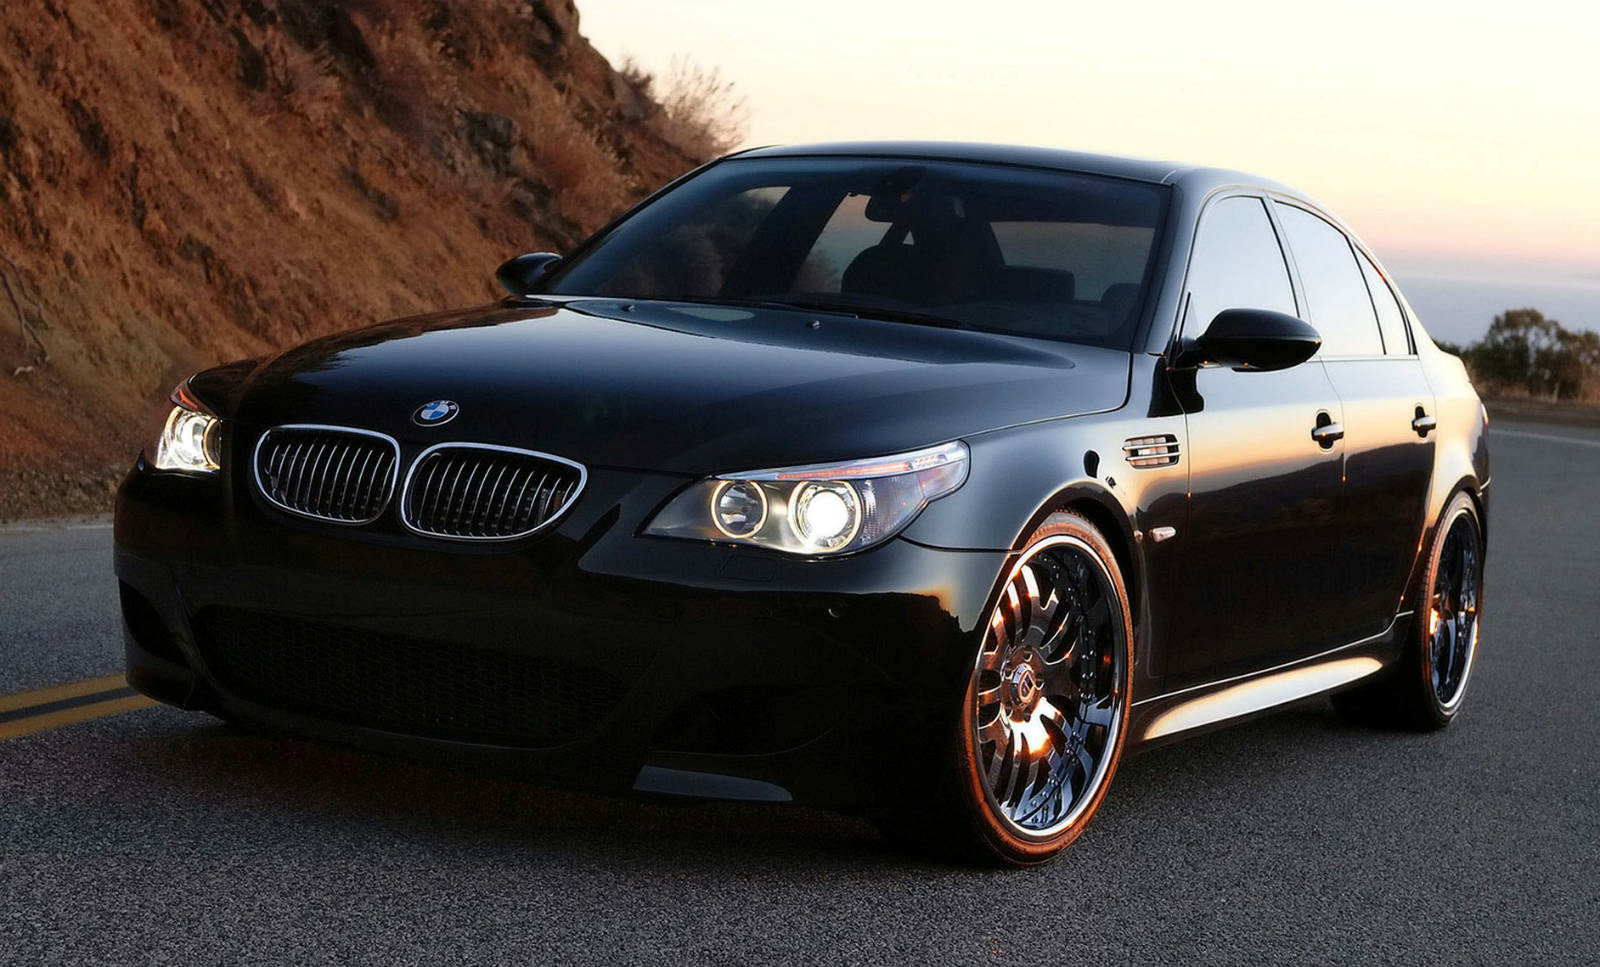 2010 Bmw M5 E60 7 No Car No Fun Muscle Cars And Power Cars